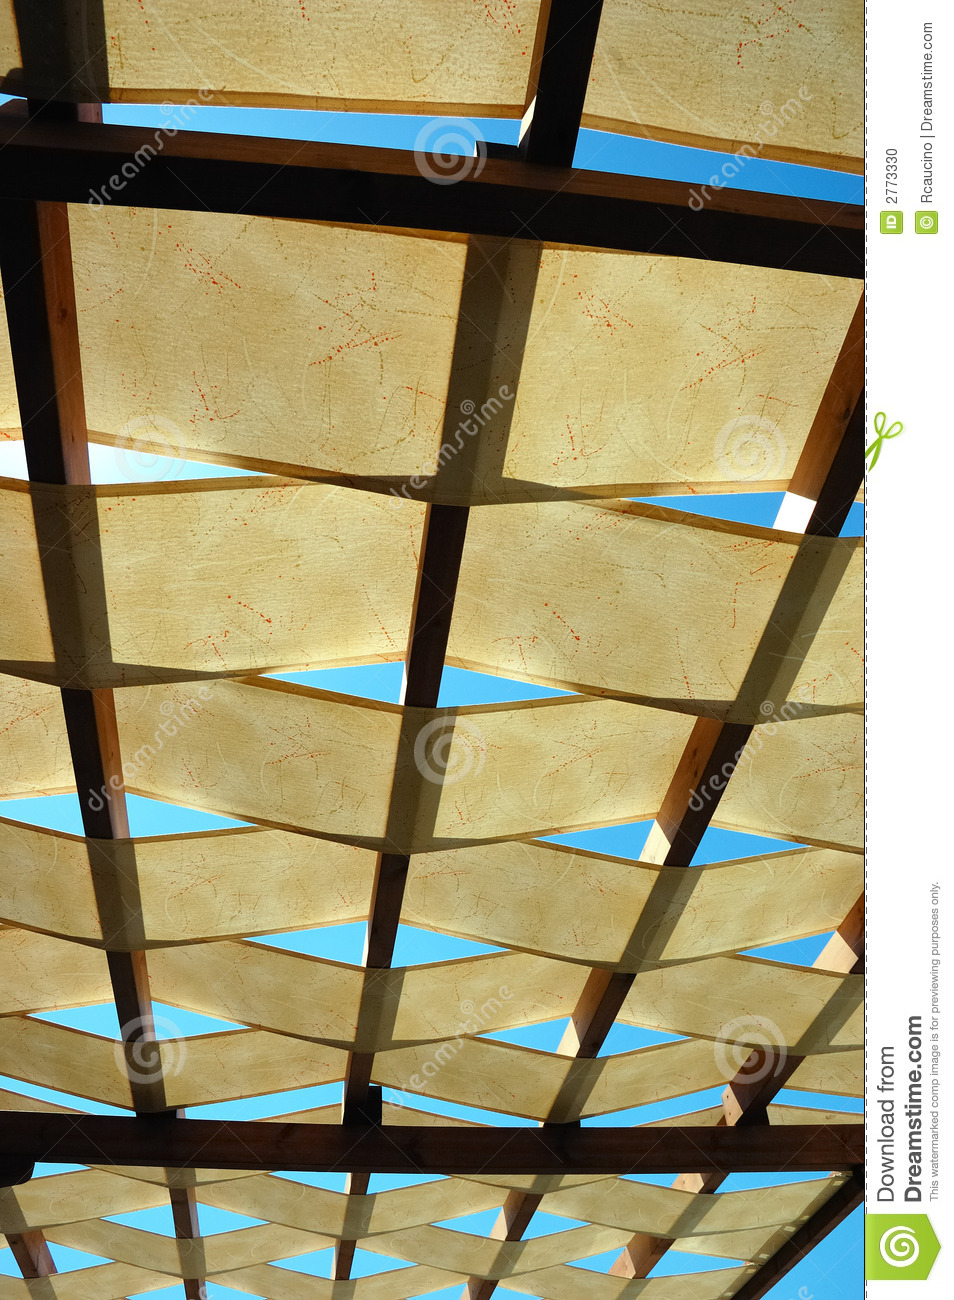 outdoor roof stock photo - image: 2773330